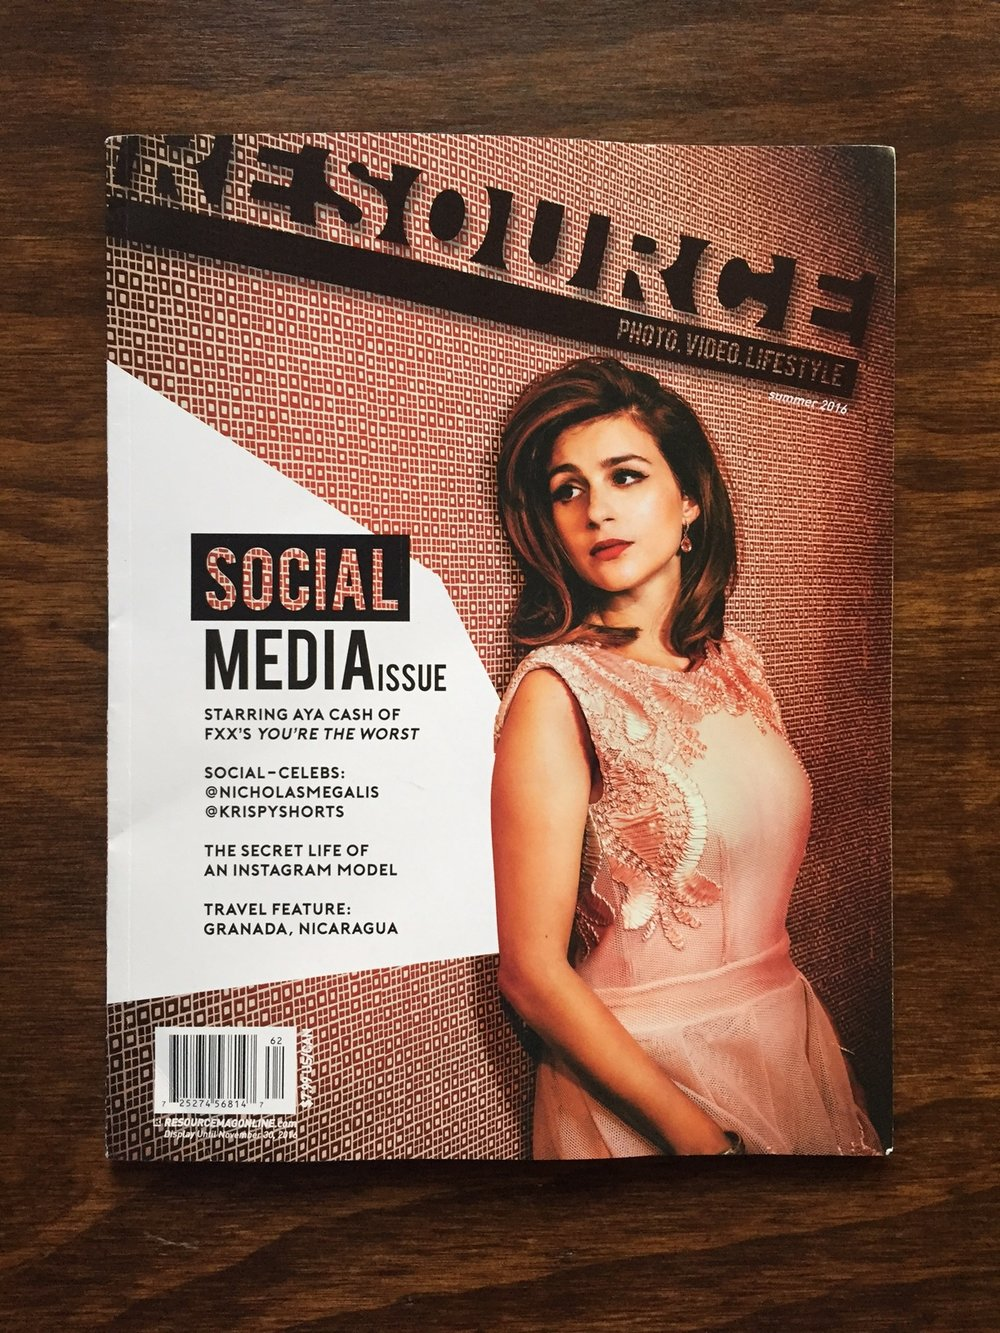 eric-pickersgill-resource-magazine-social-meida-issue-2.JPG